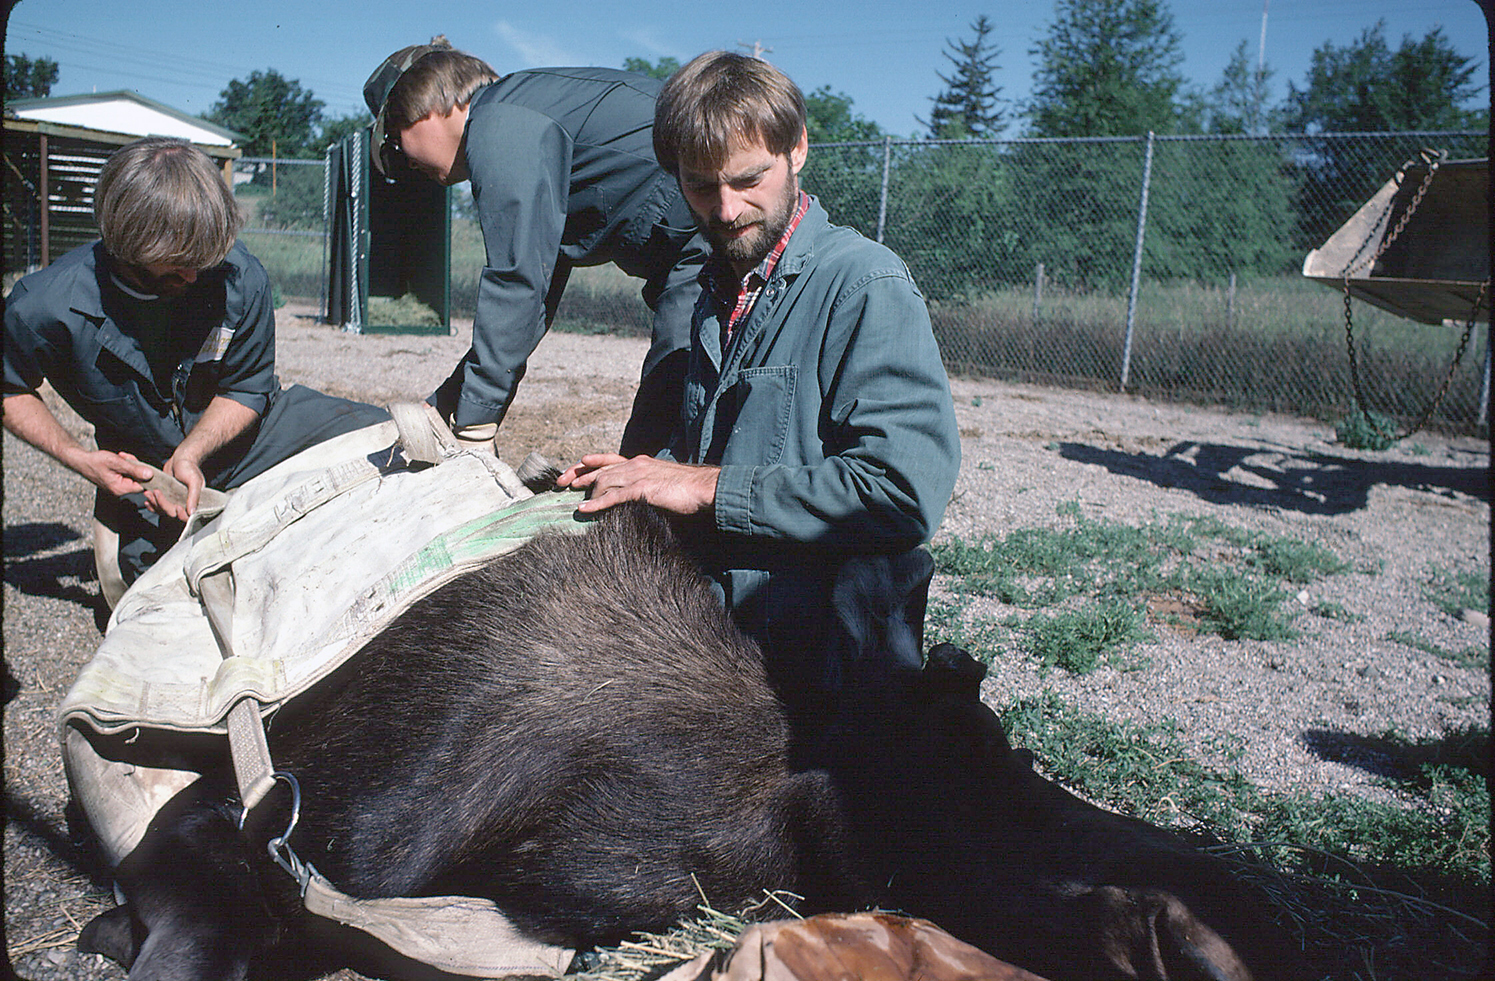 Michigan Department of Natural Resources wildlife veterinarian Steve Schmitt is working out the details of crating a sedated moose at Rose Lake, 1984.